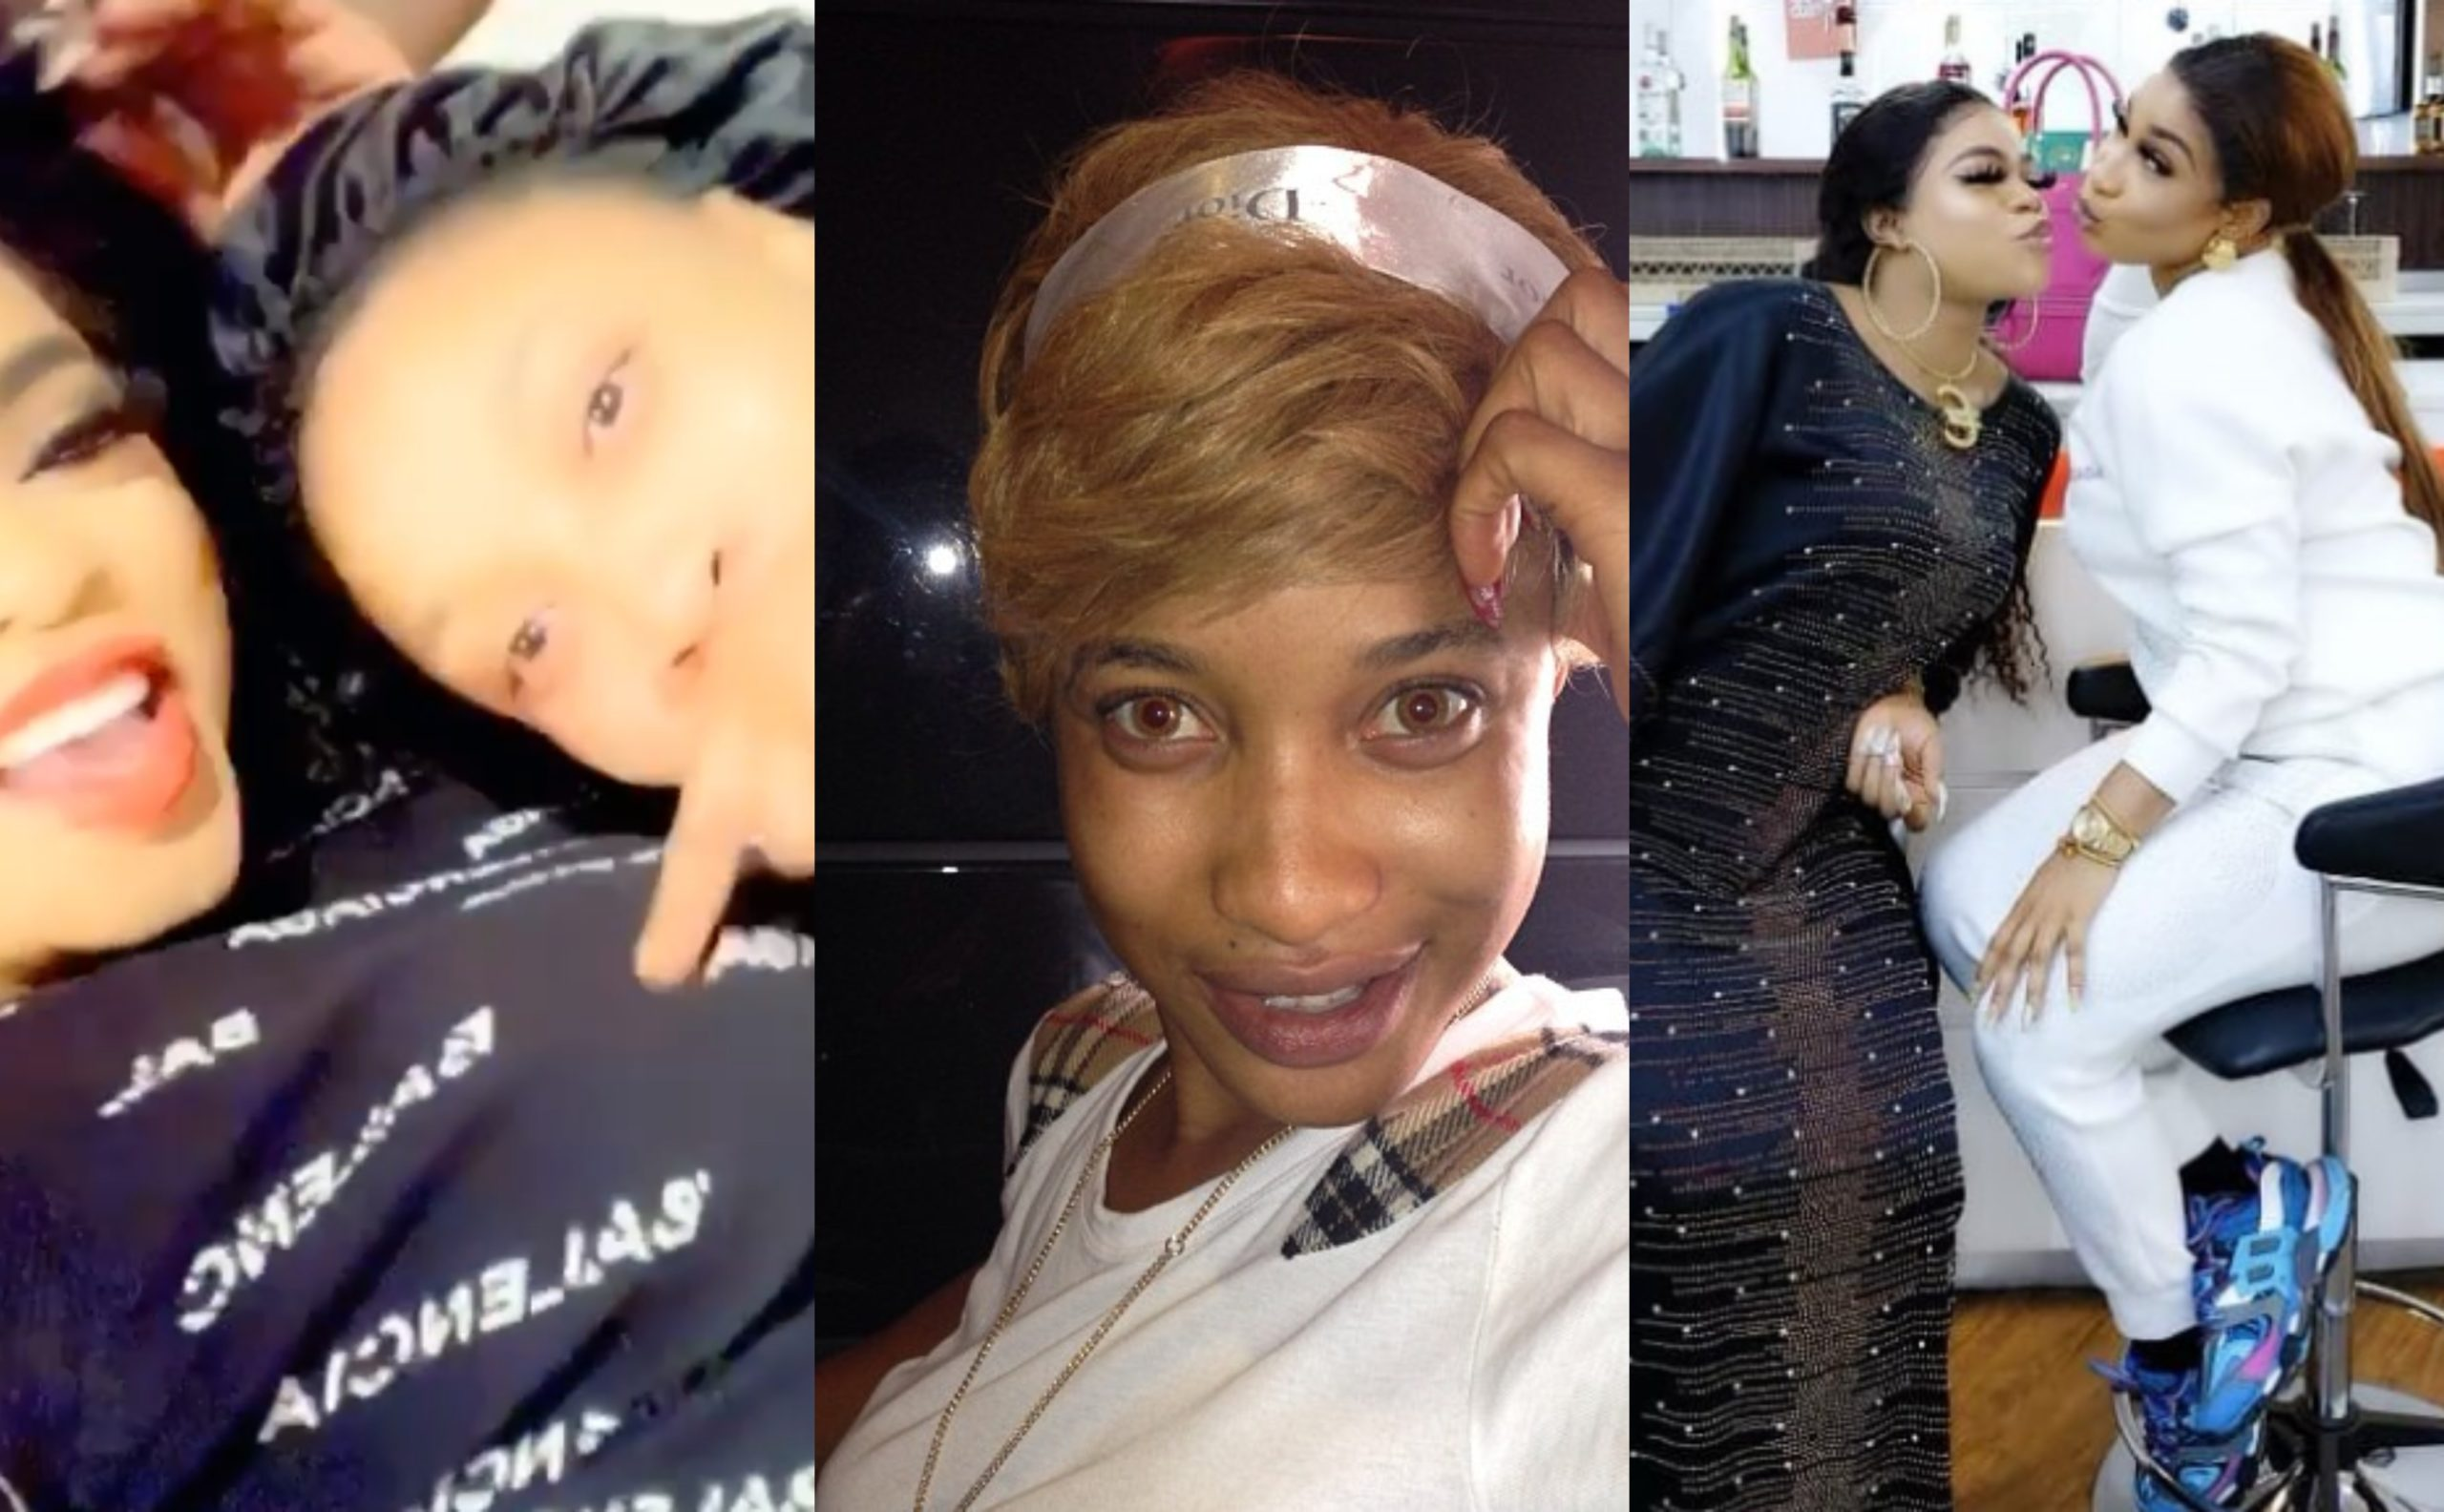 Tonto Dikeh in a gay relationship with Bobrisky and Is addicted to hard drugs – Nigerian Journalist (More Revelations) (1)